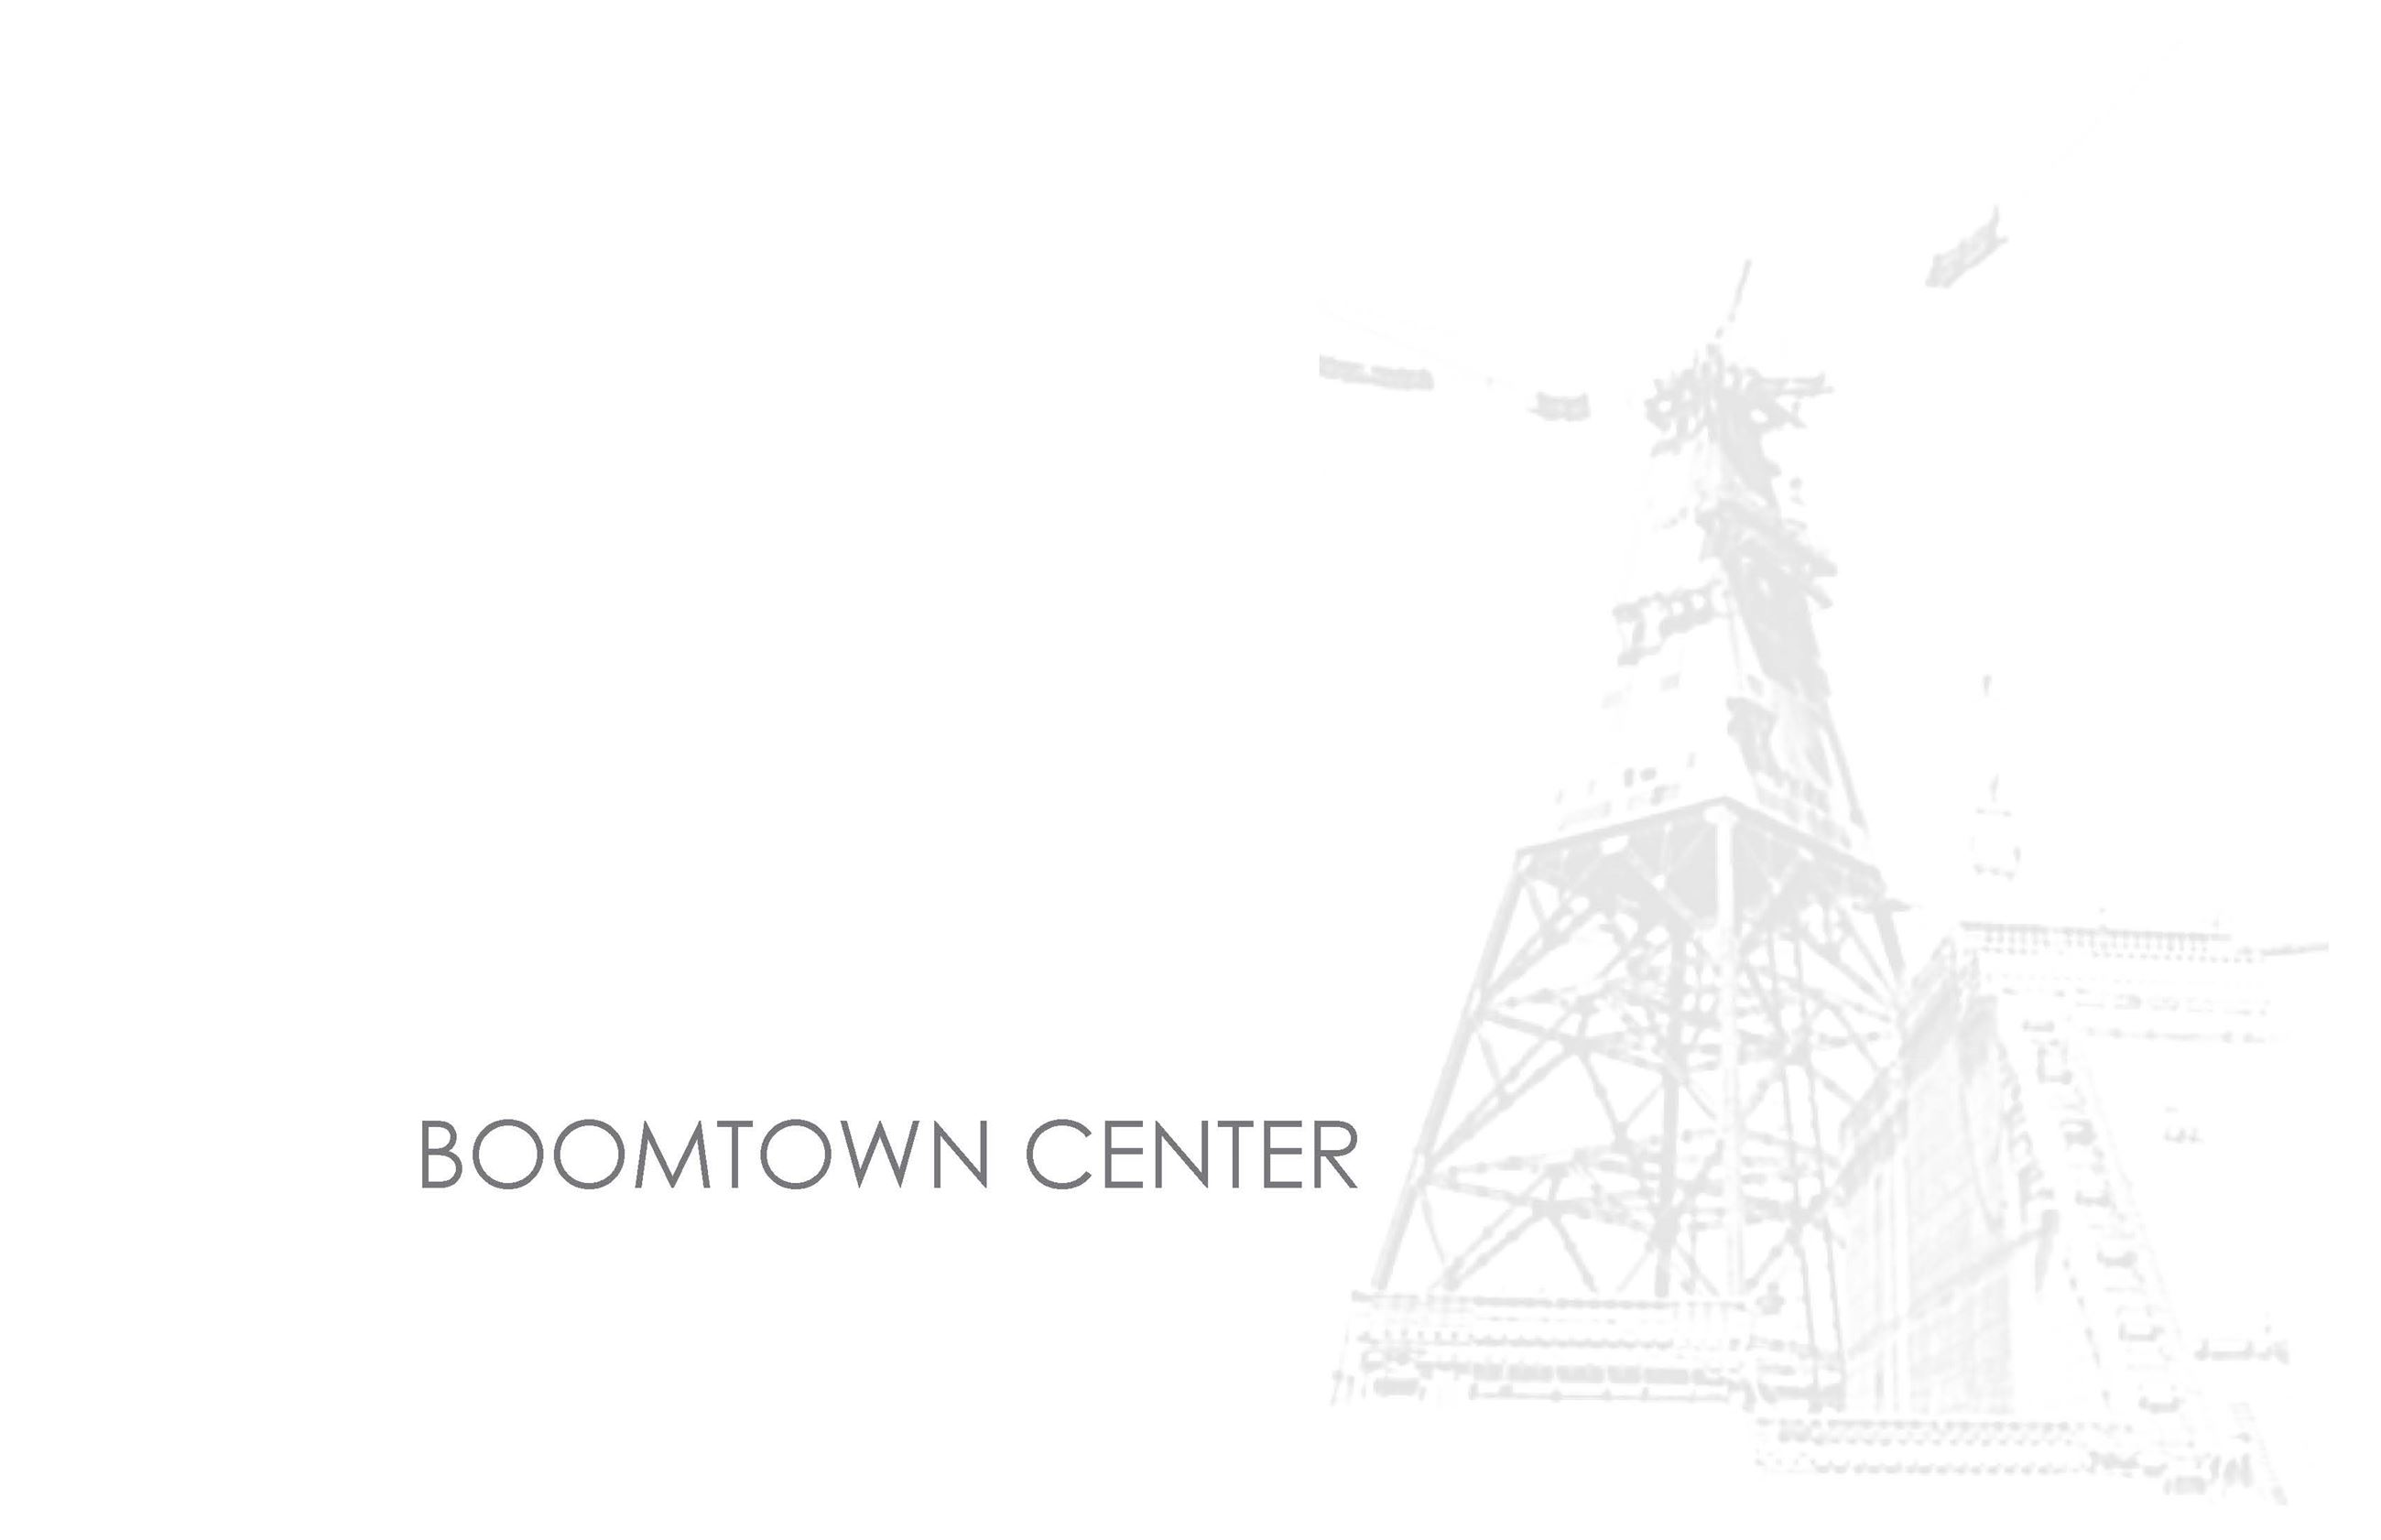 19.14 - Boomtown Center (2020.01.24)_Page_01